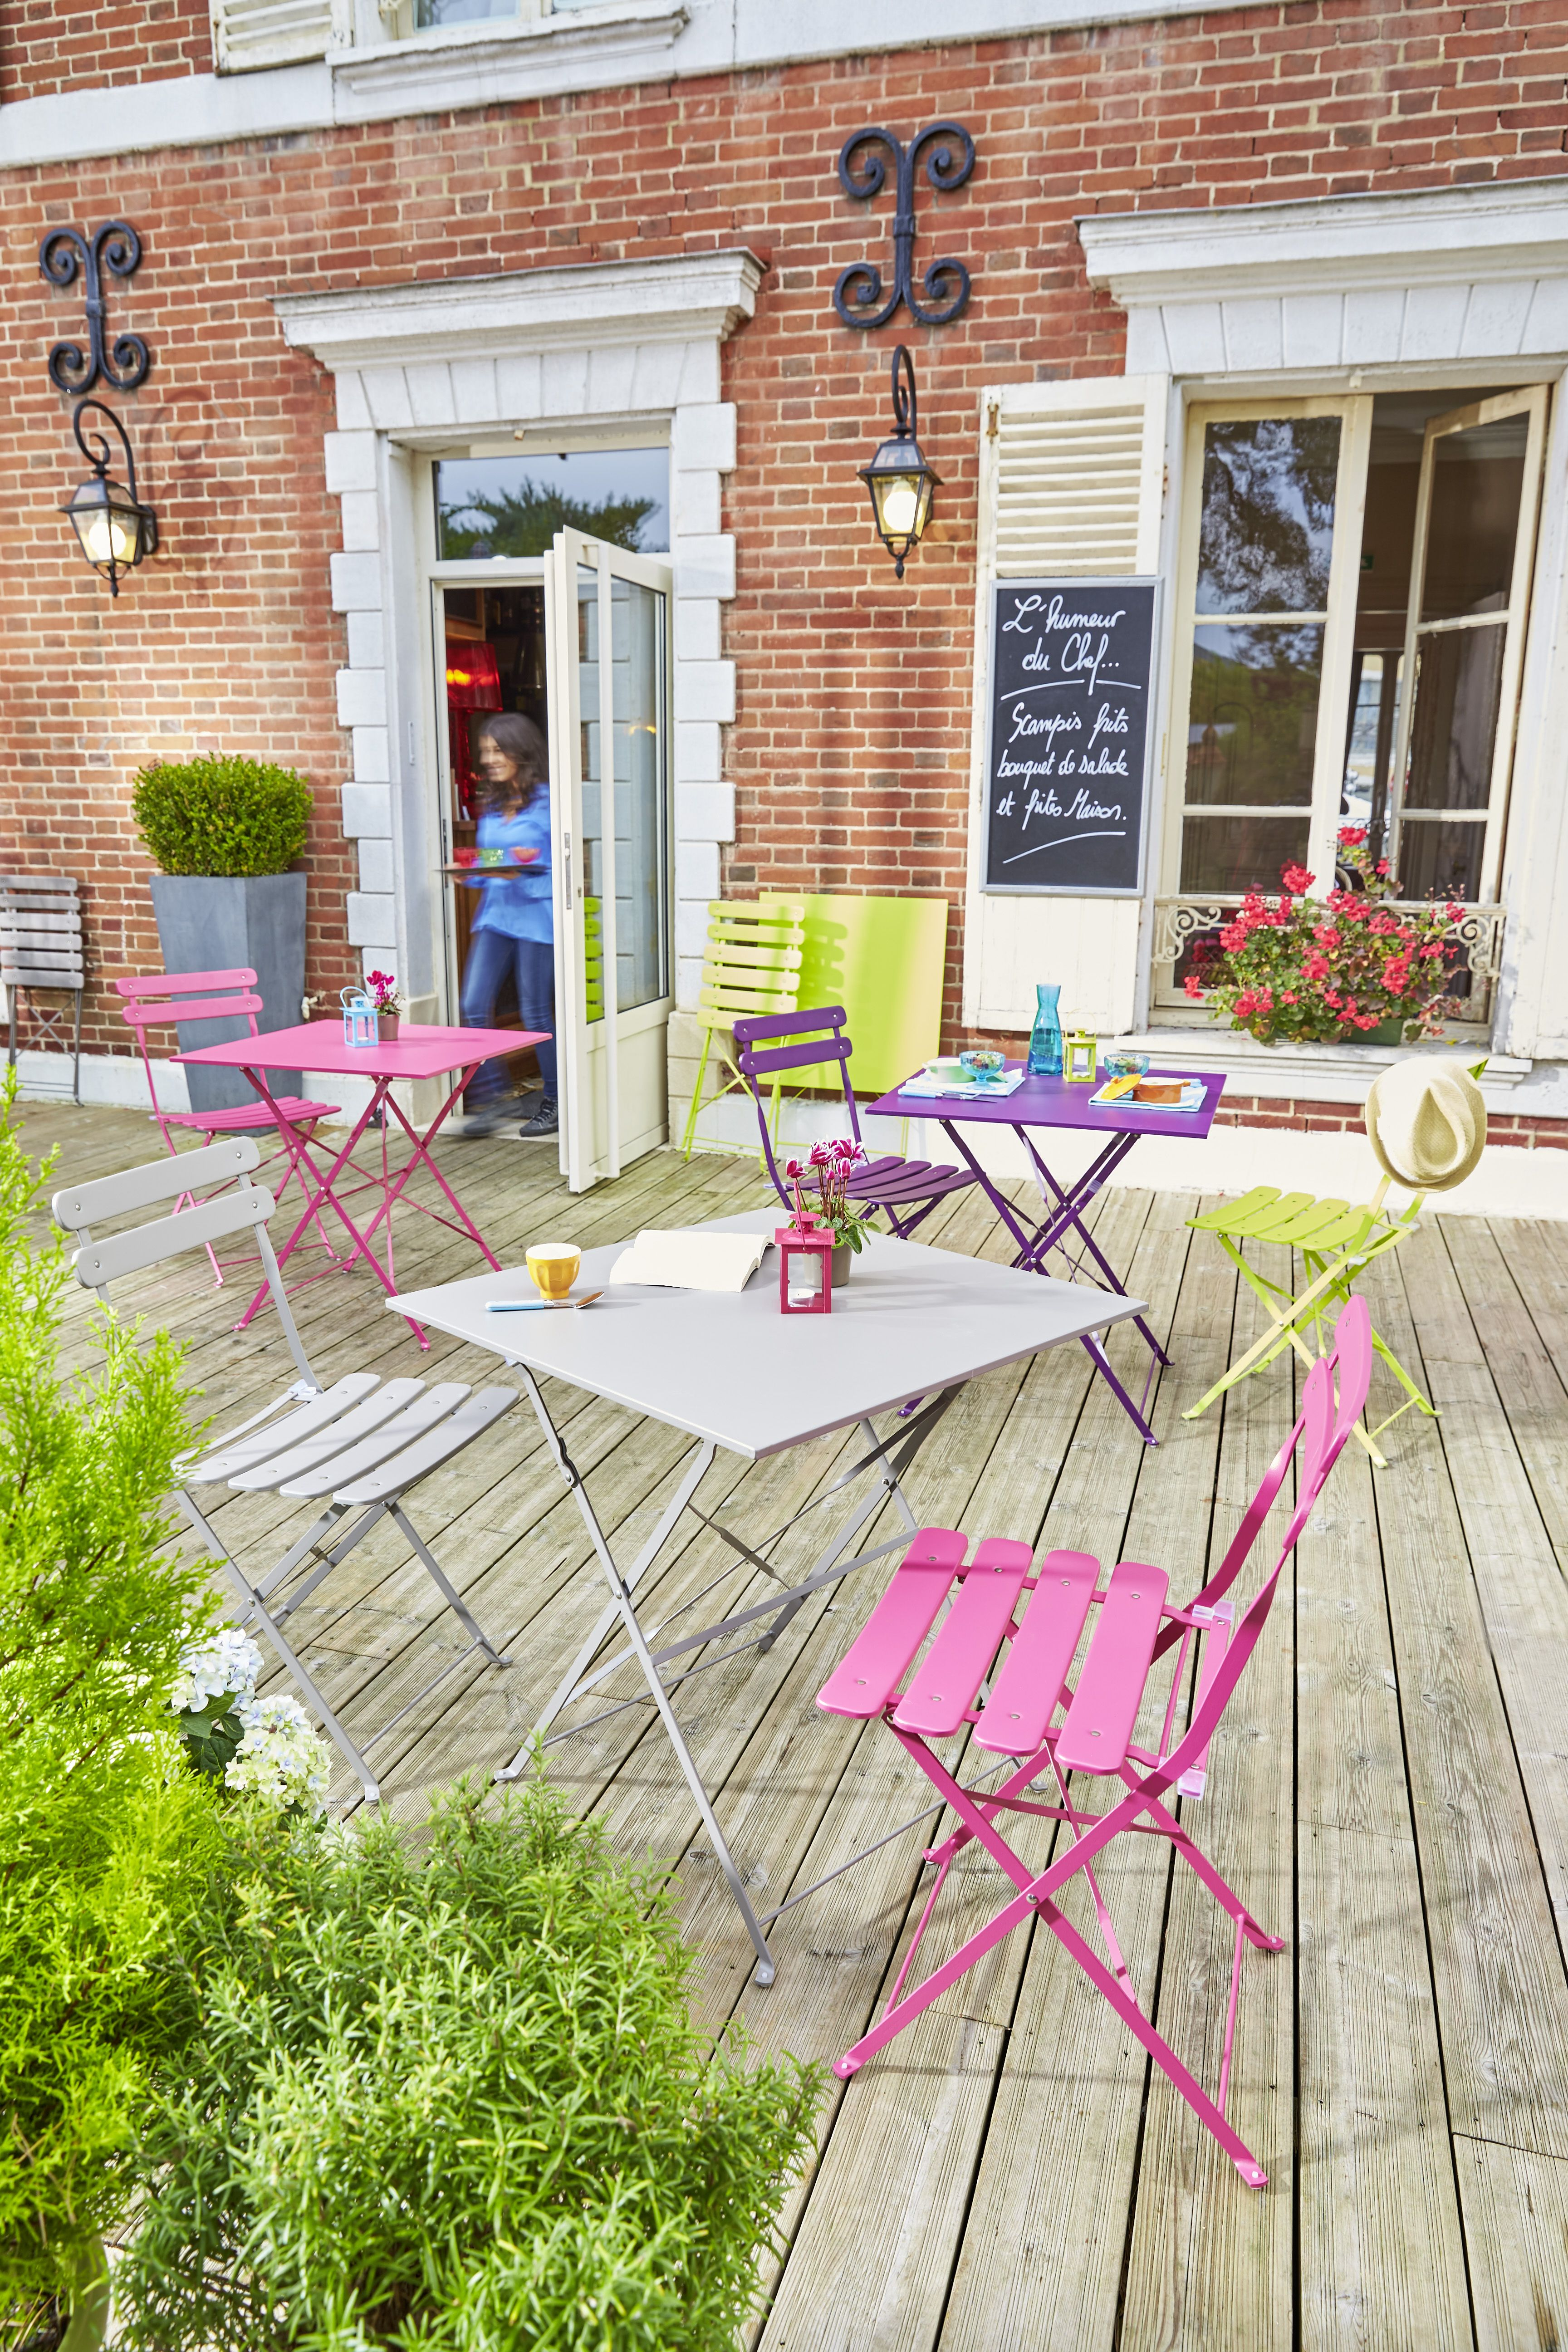 Salon De Jardin Carrefour 2016 Table Carrée Et Chaise Bistrot Pliante Rose Grise Verte